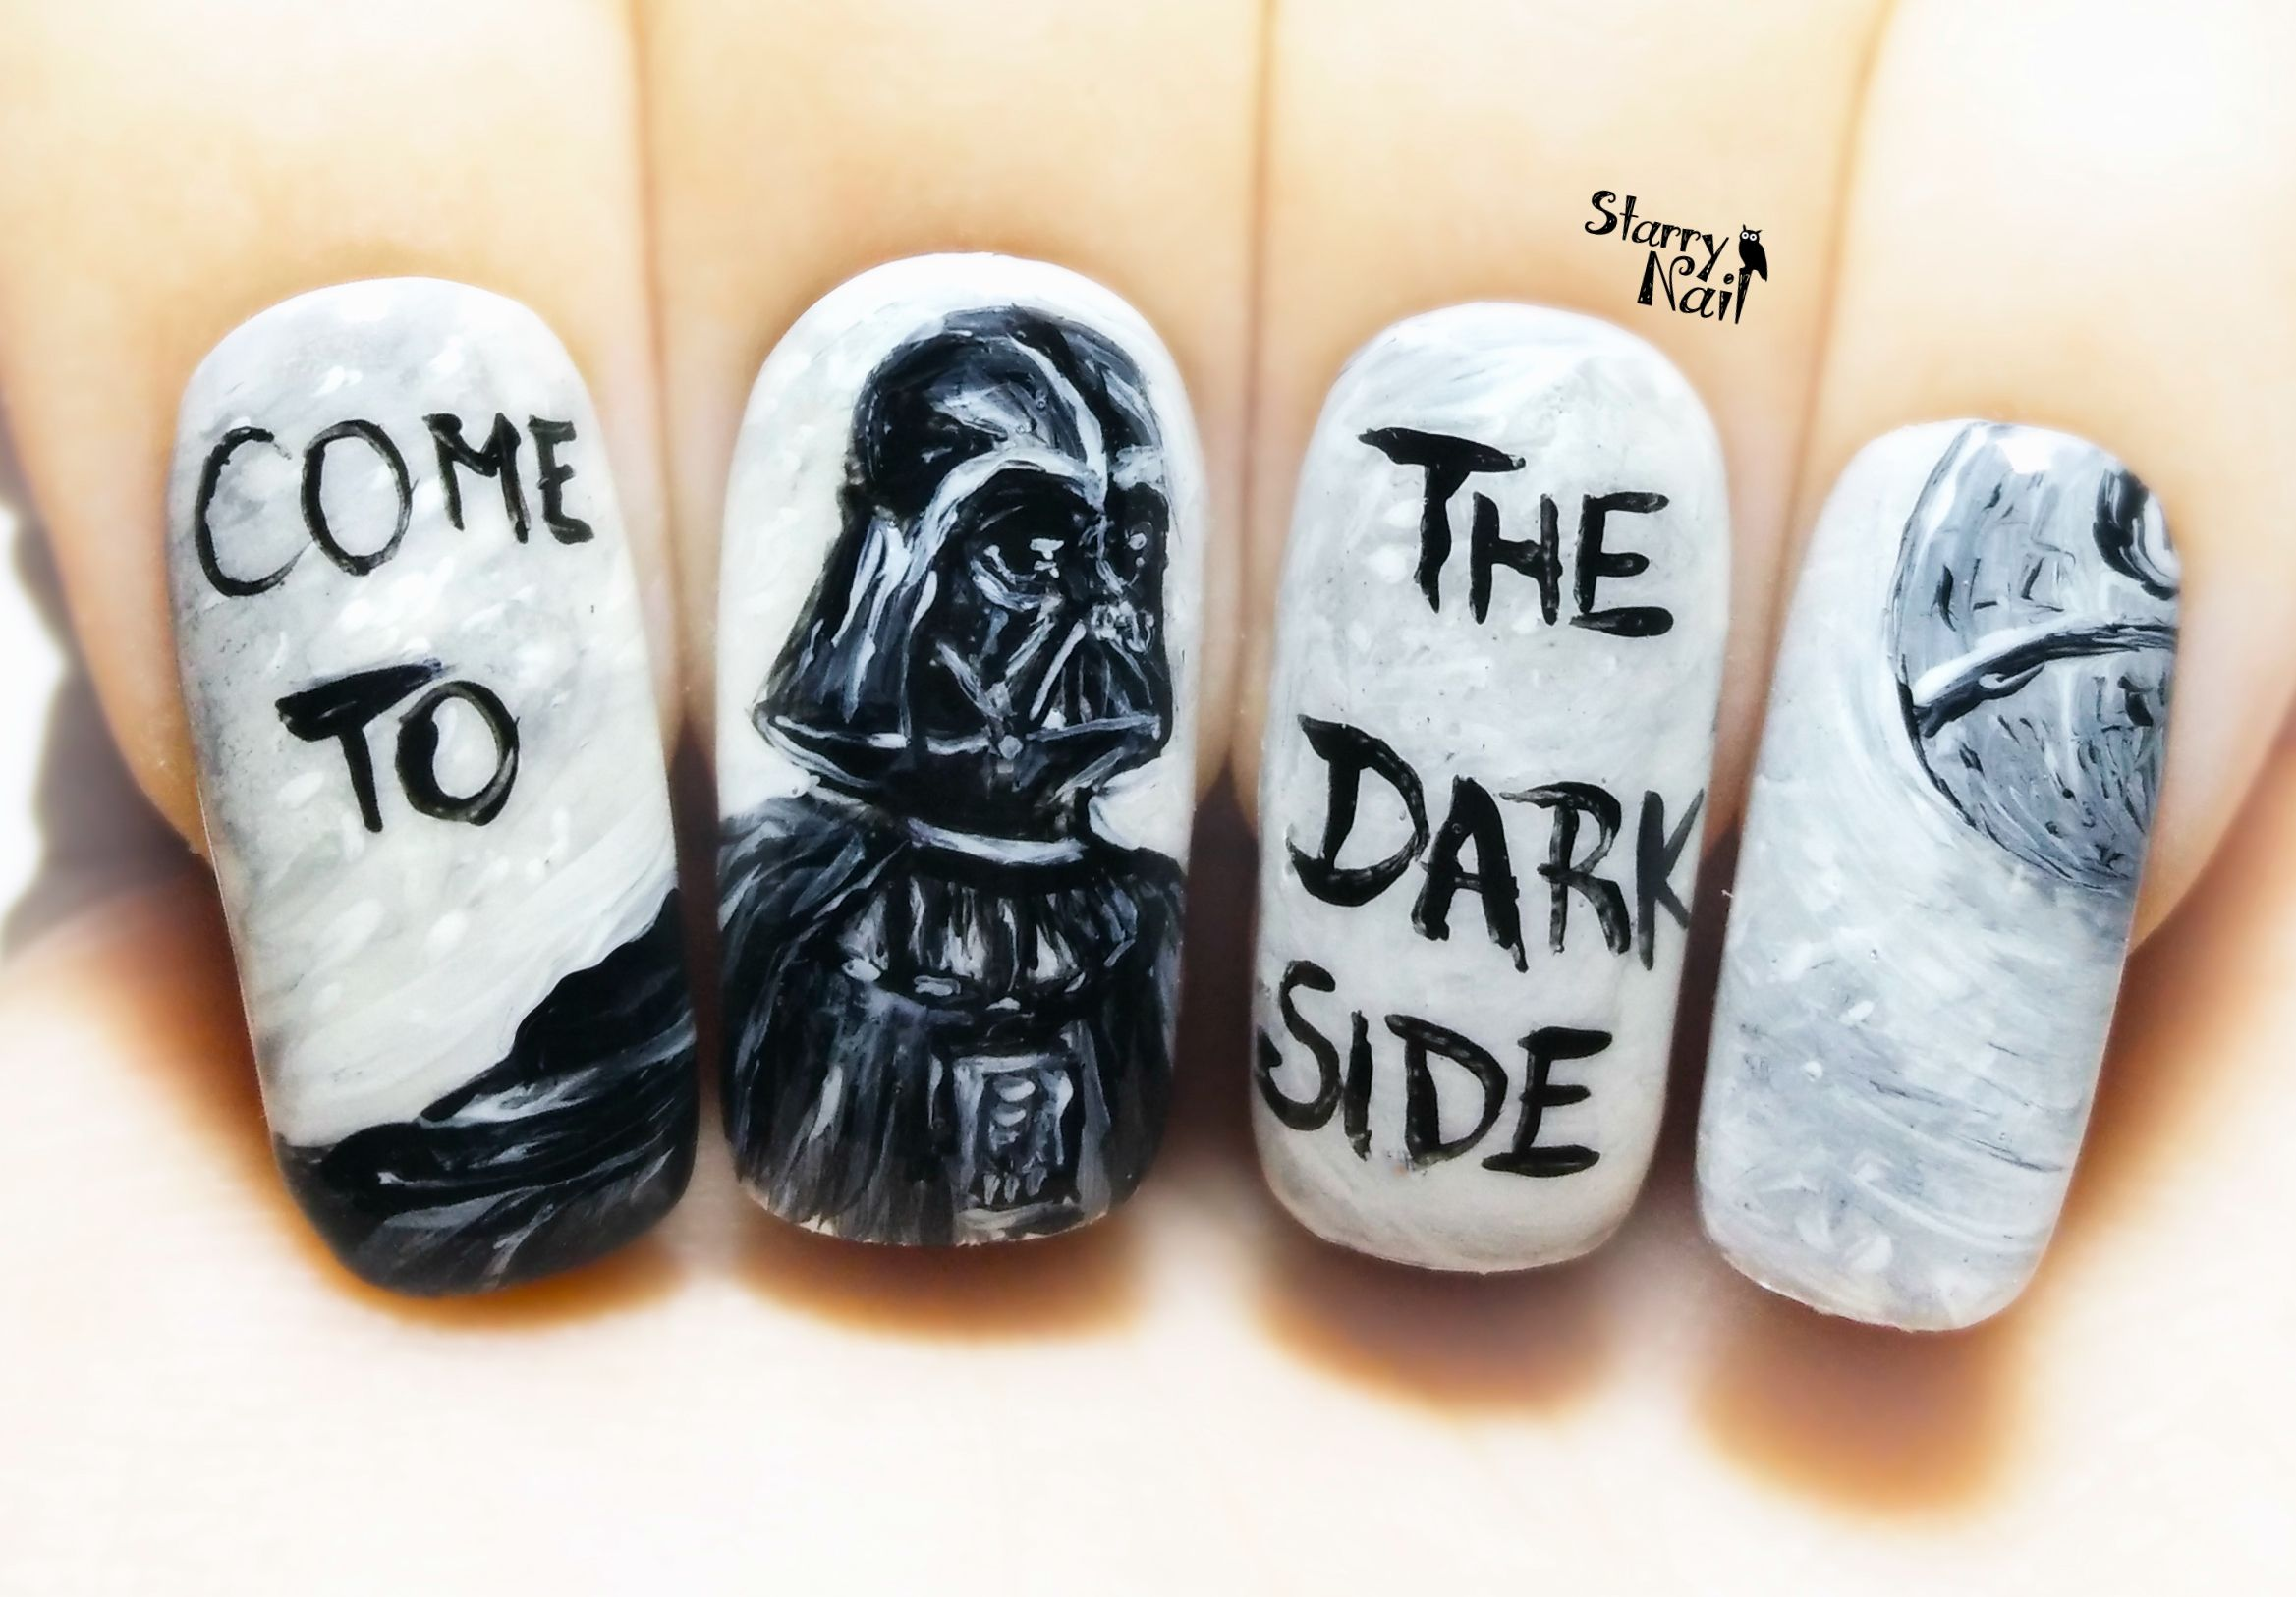 Star Wars ⎮ Darth Vader ⎮ Come to the Dark Side ⎮ Freehand Nail ...